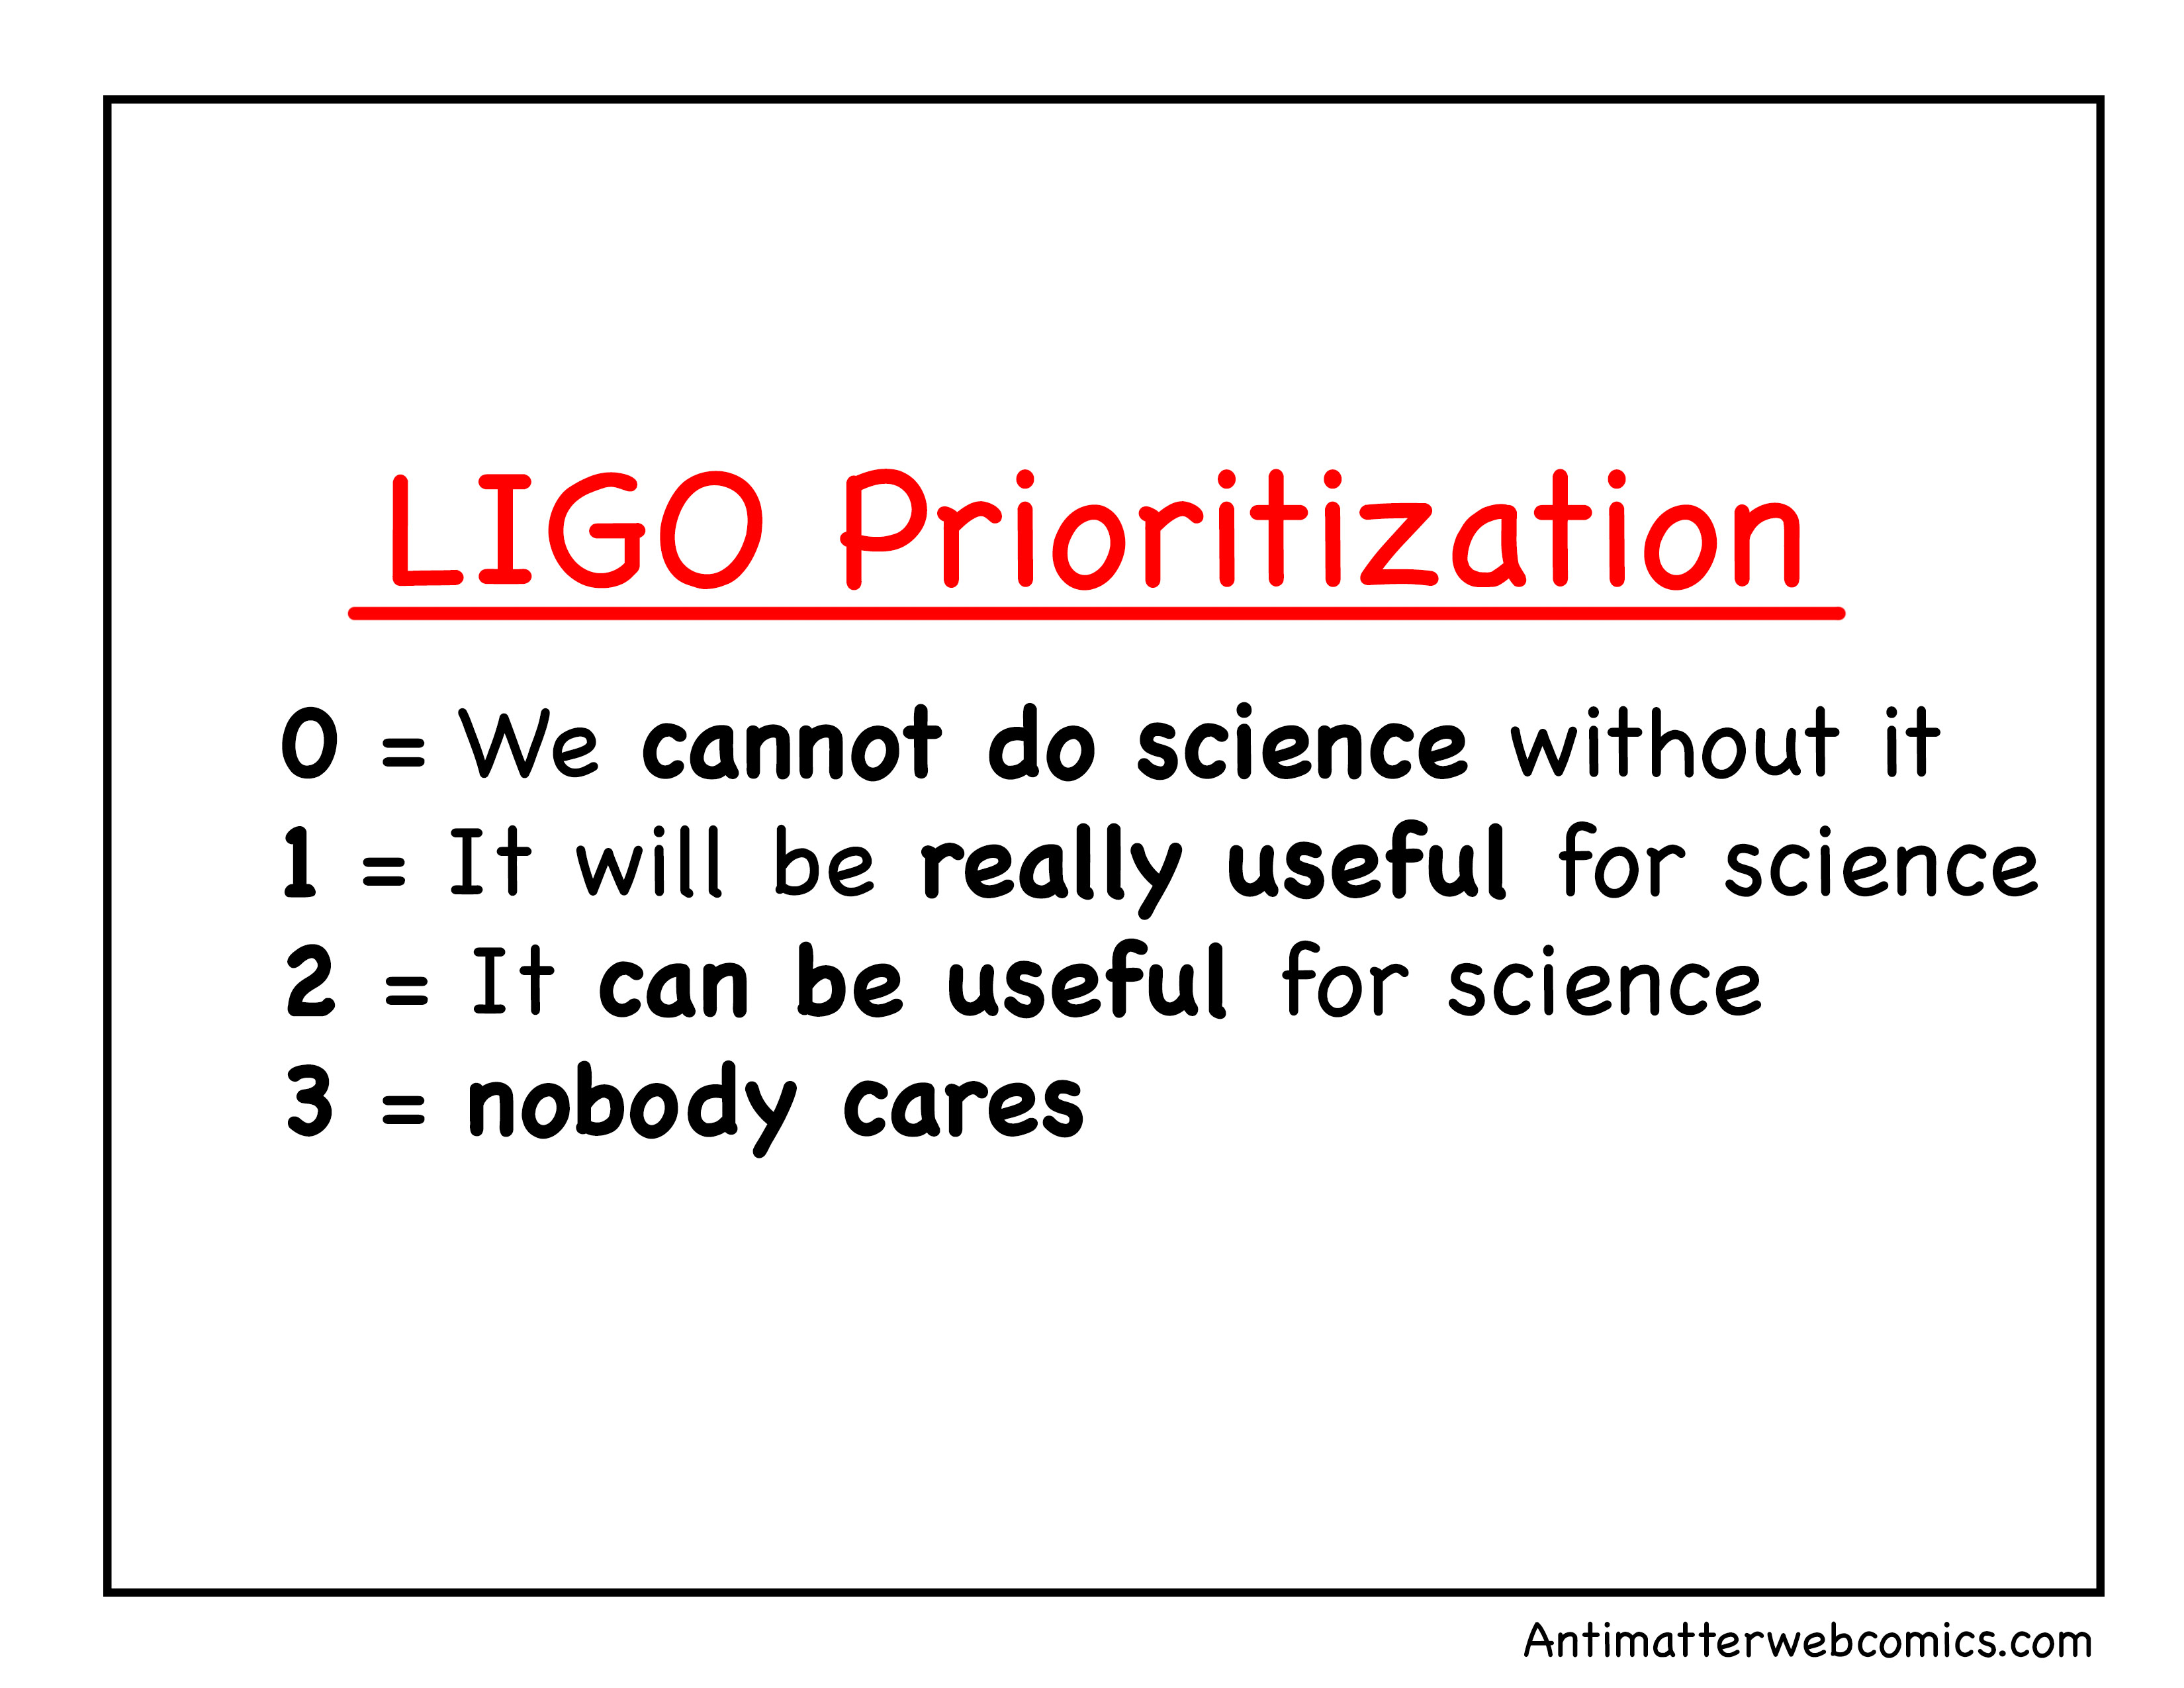 LIGO Prioritization